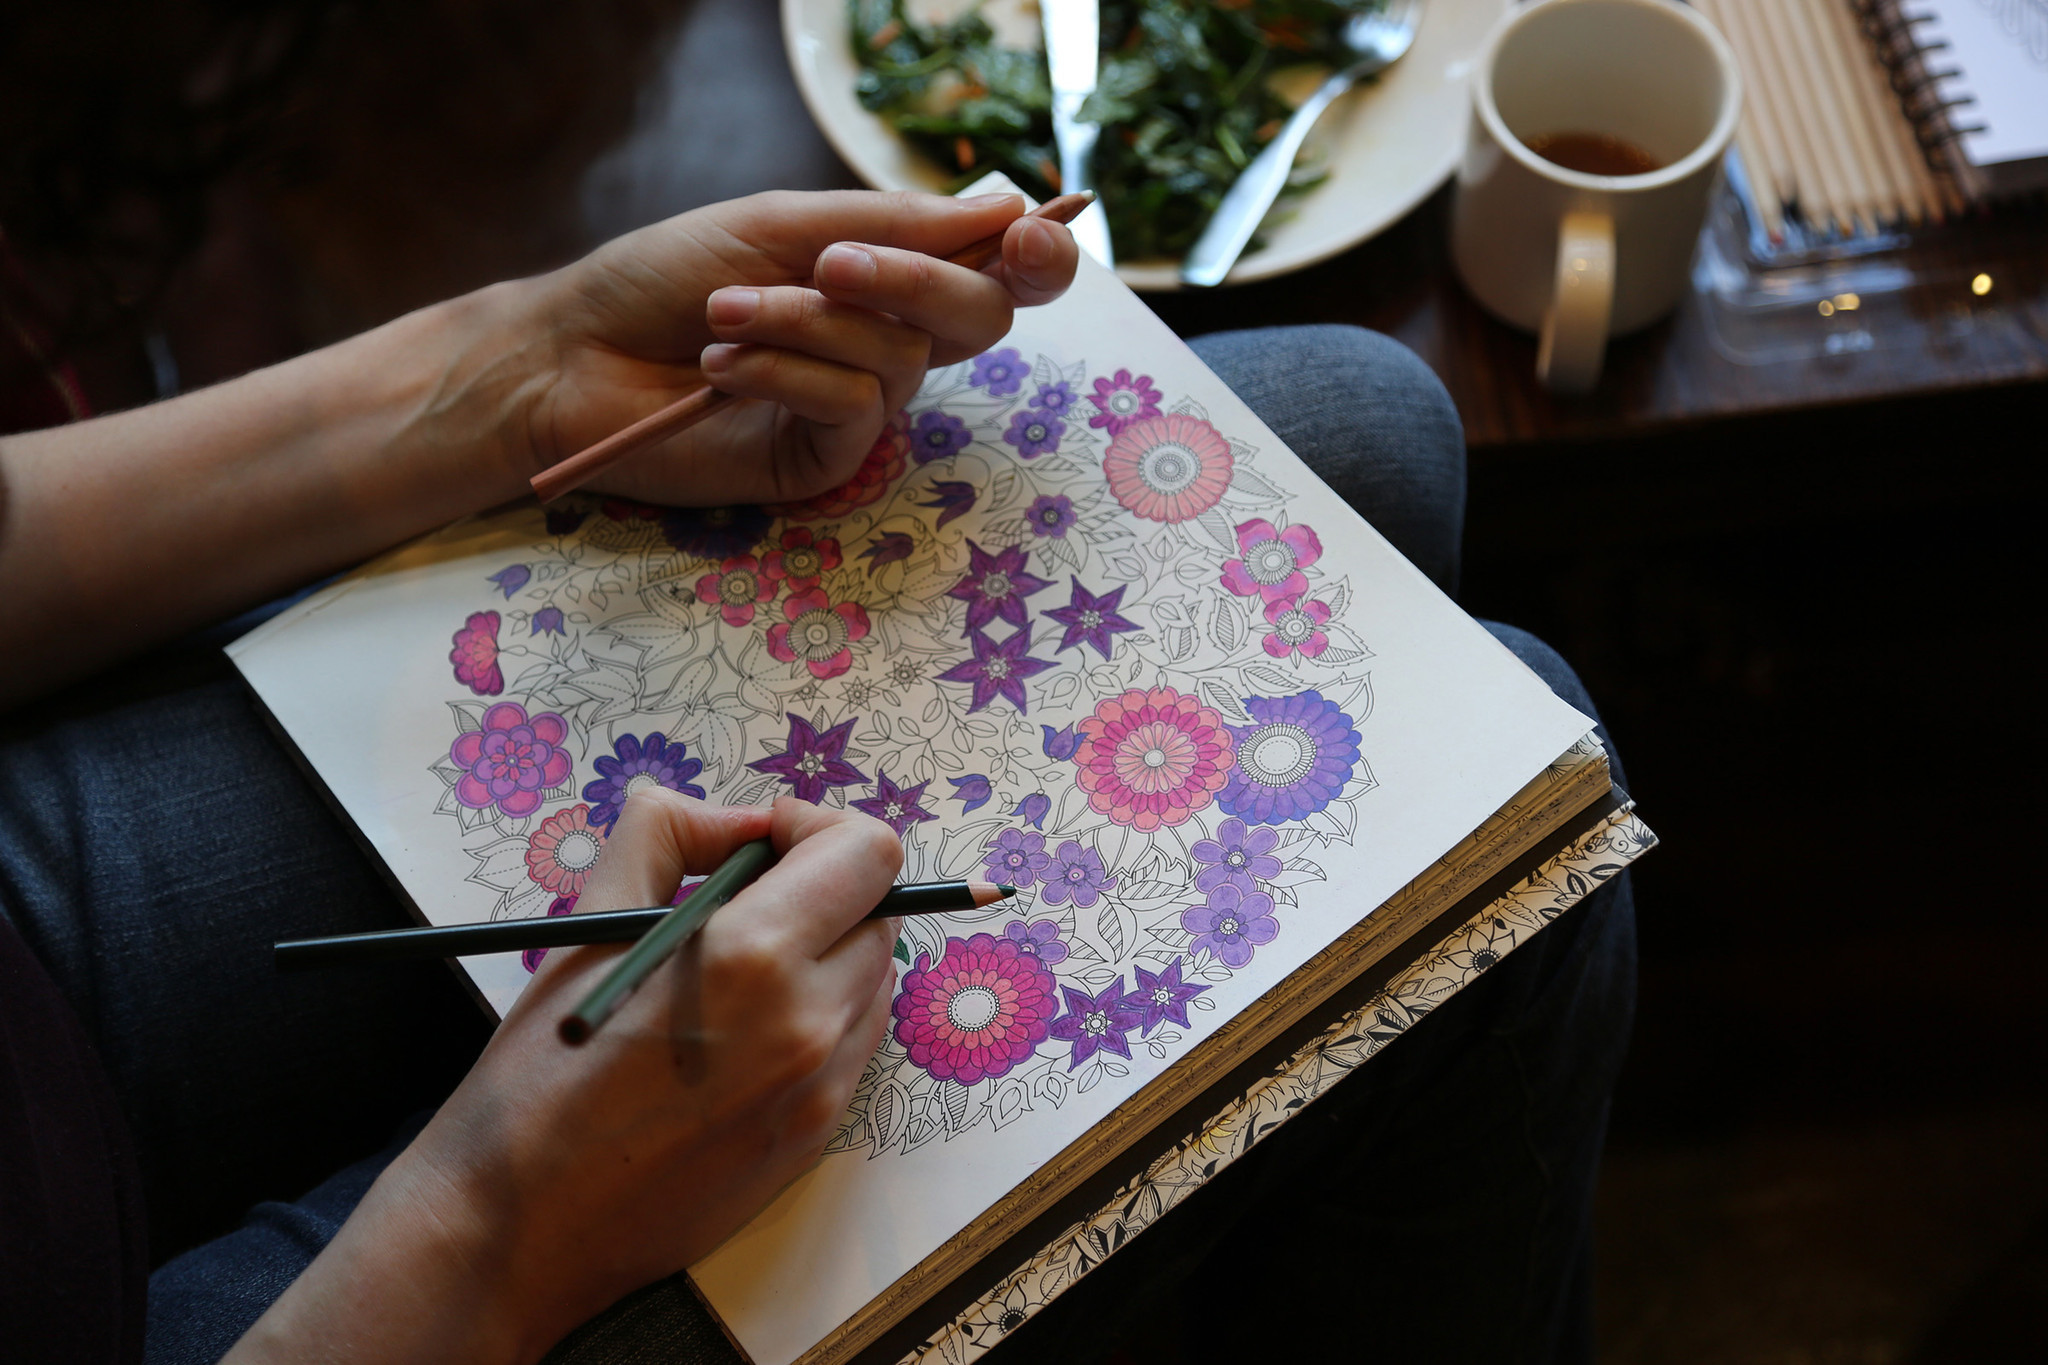 The Big Business Behind Adult Coloring Book Craze